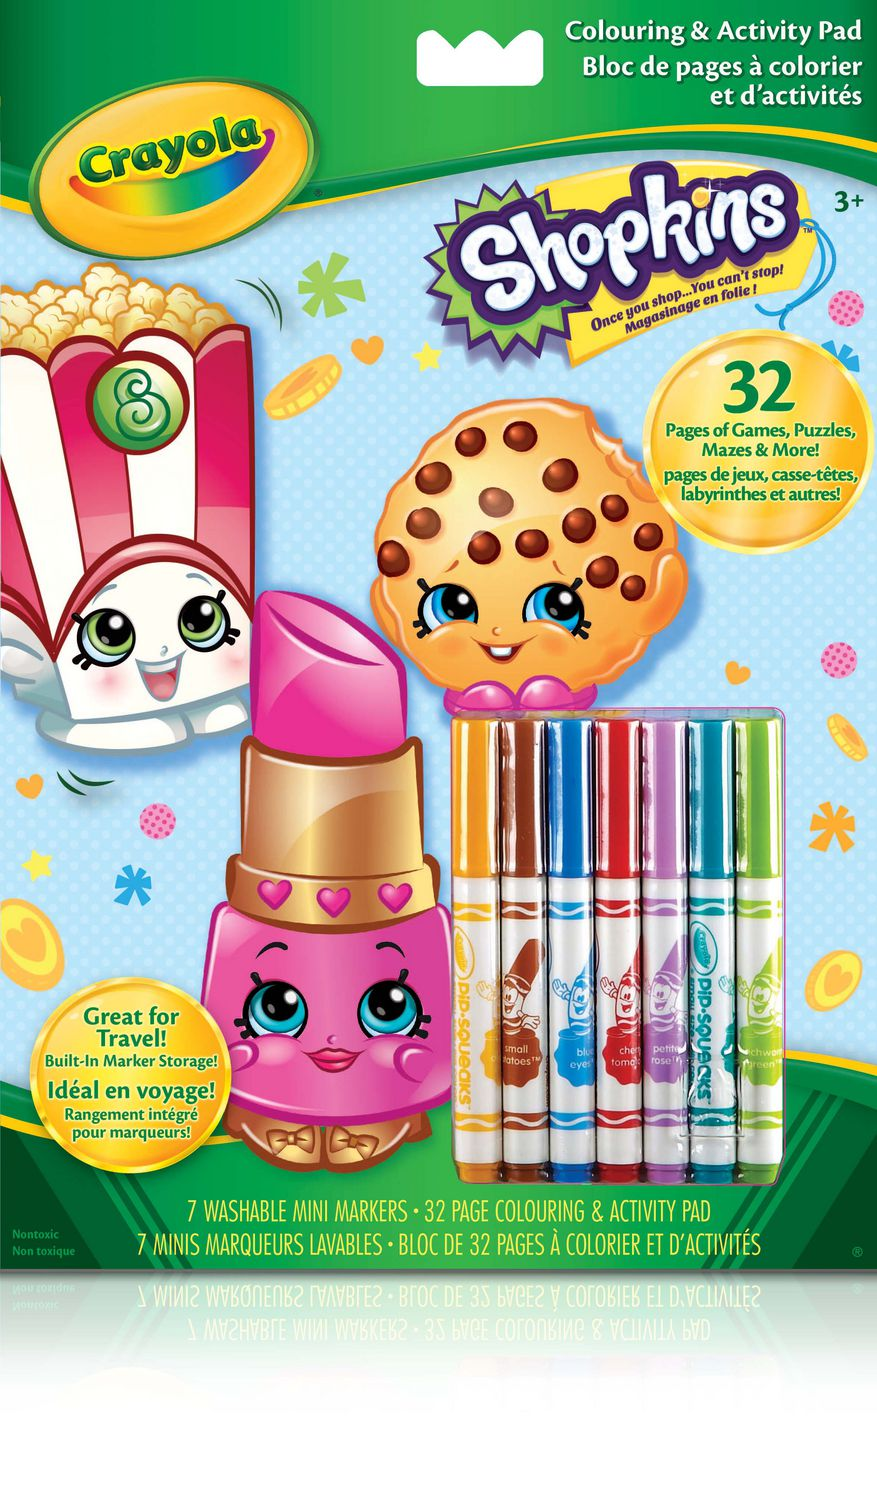 84 Crayola Shopkins Coloring Book Best HD